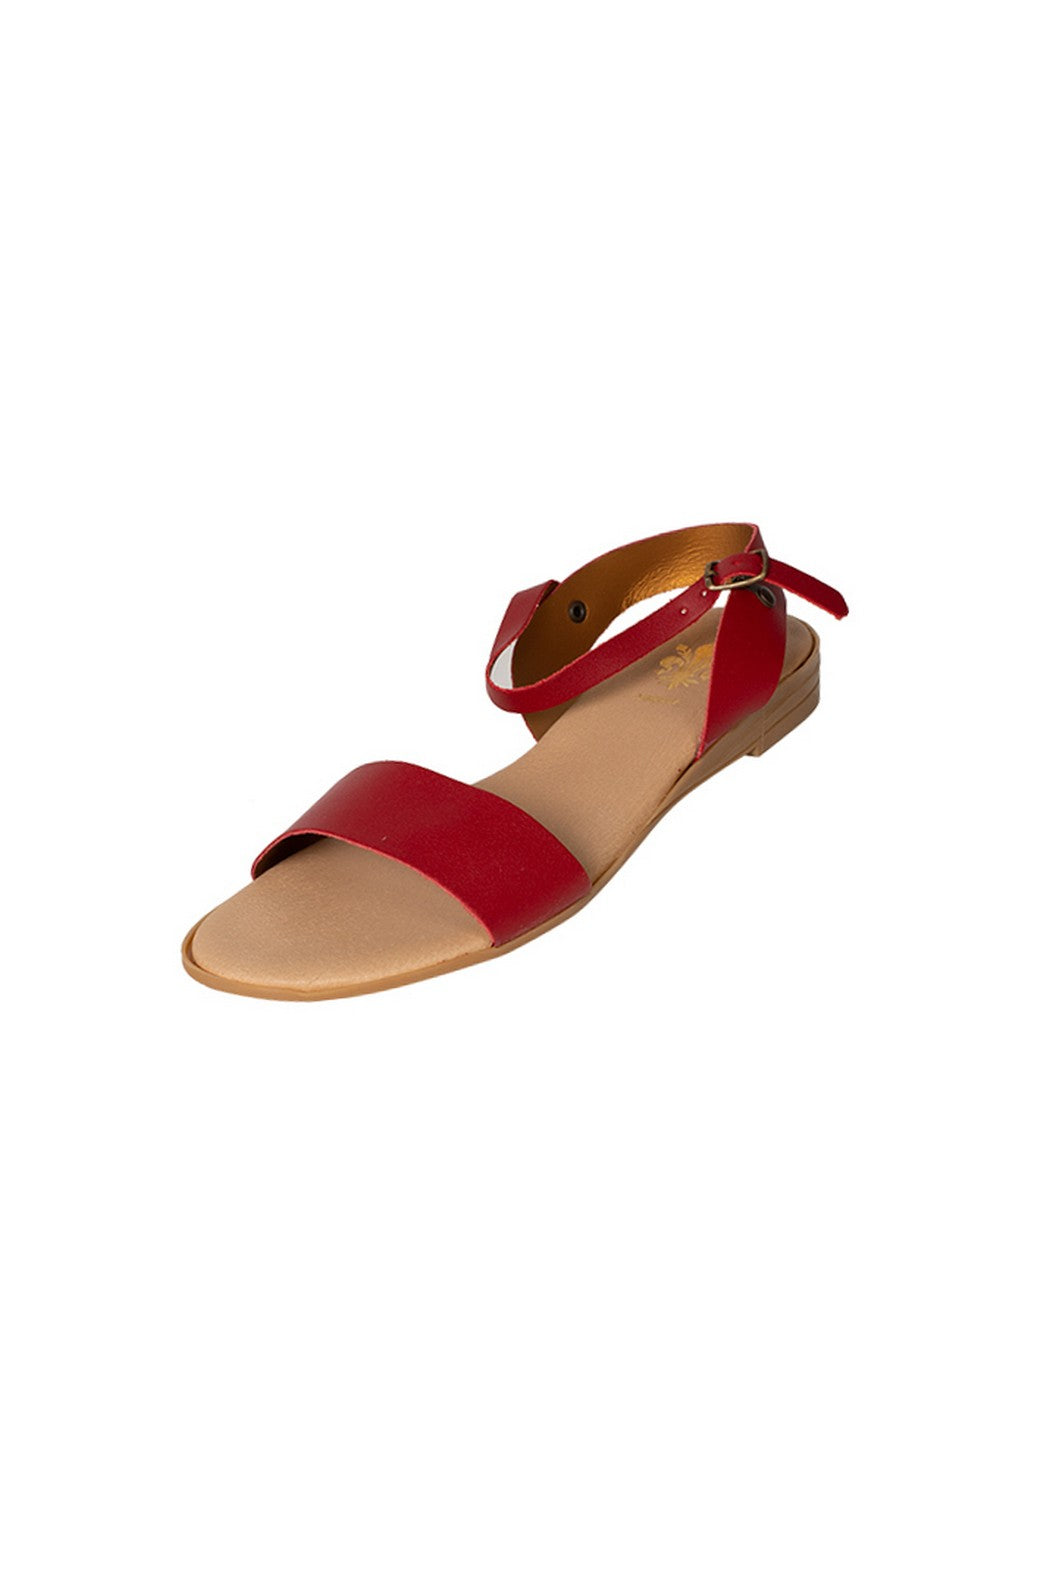 Lucia casual red sandal two strap less than 100